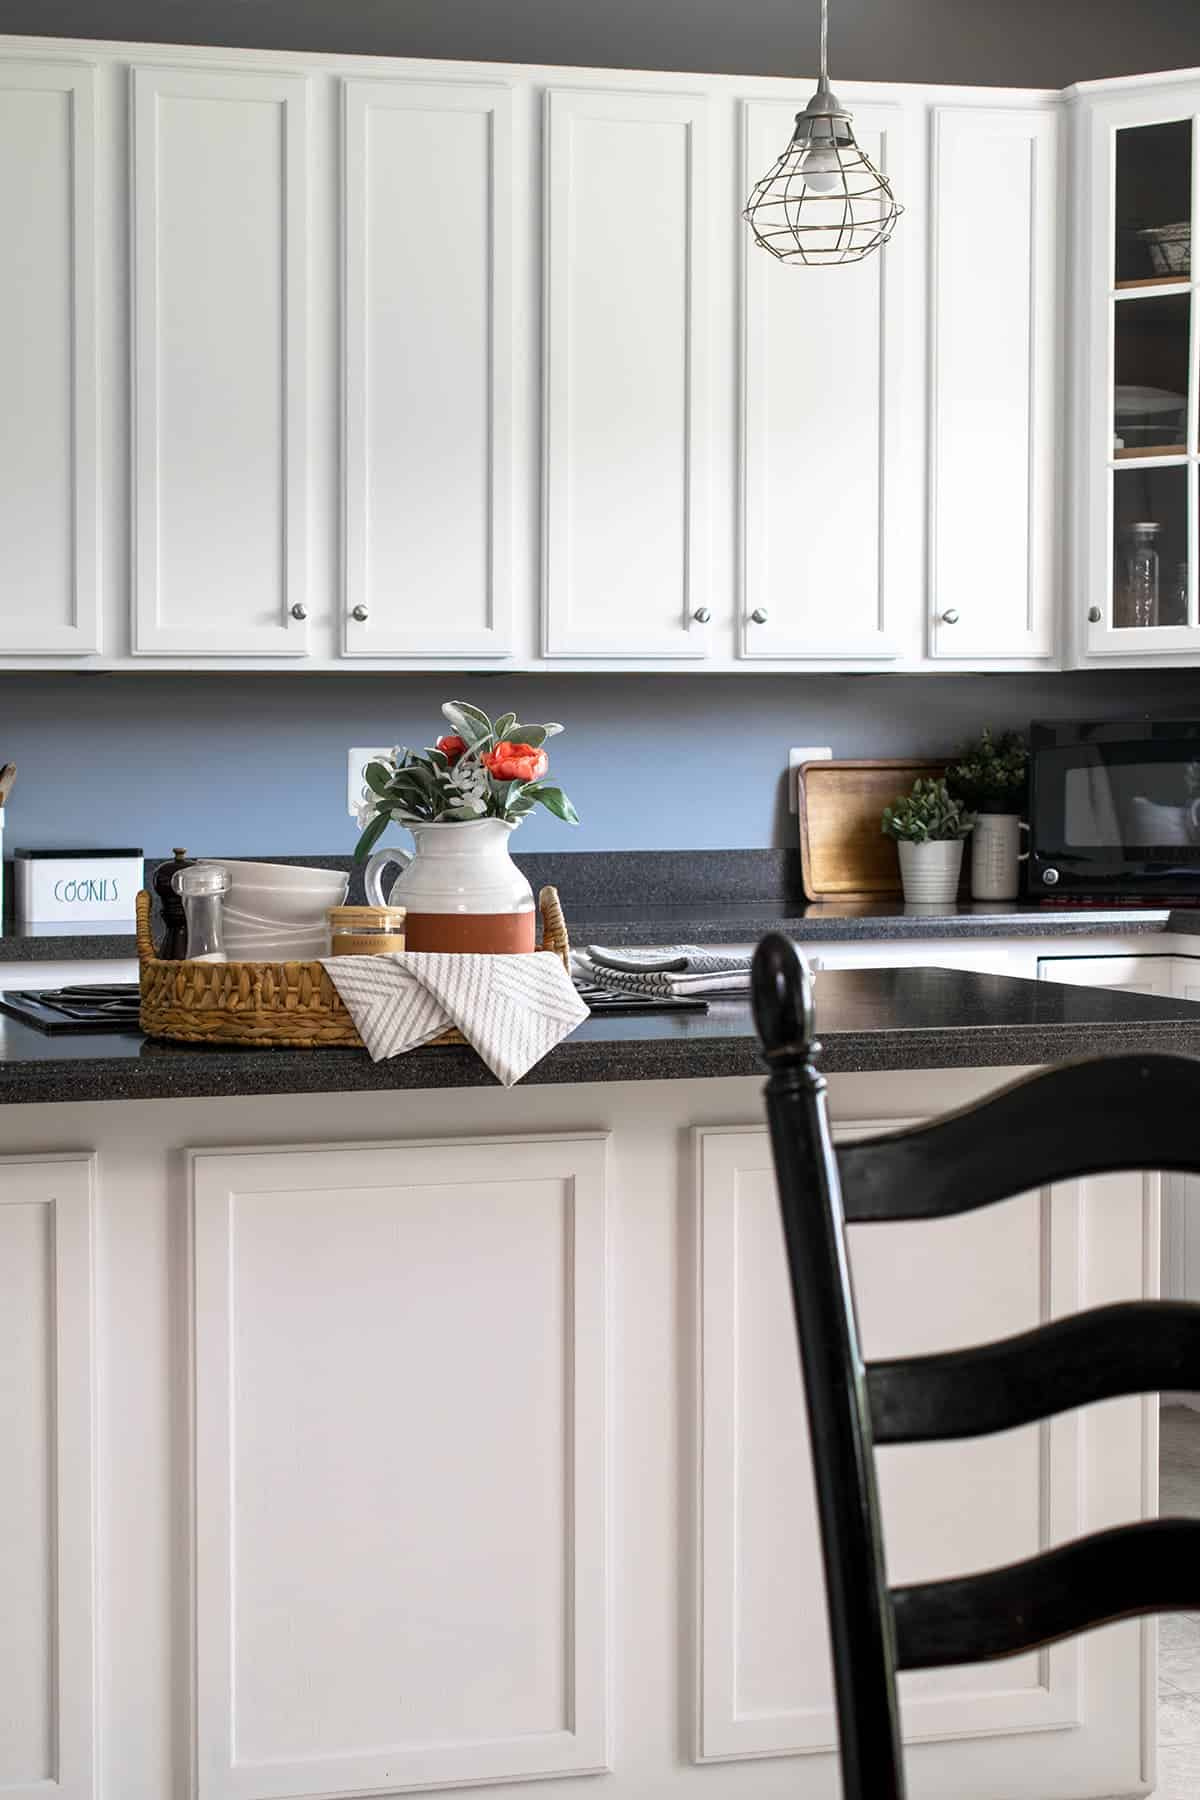 White painted kitchen cabinets with silver hardware.